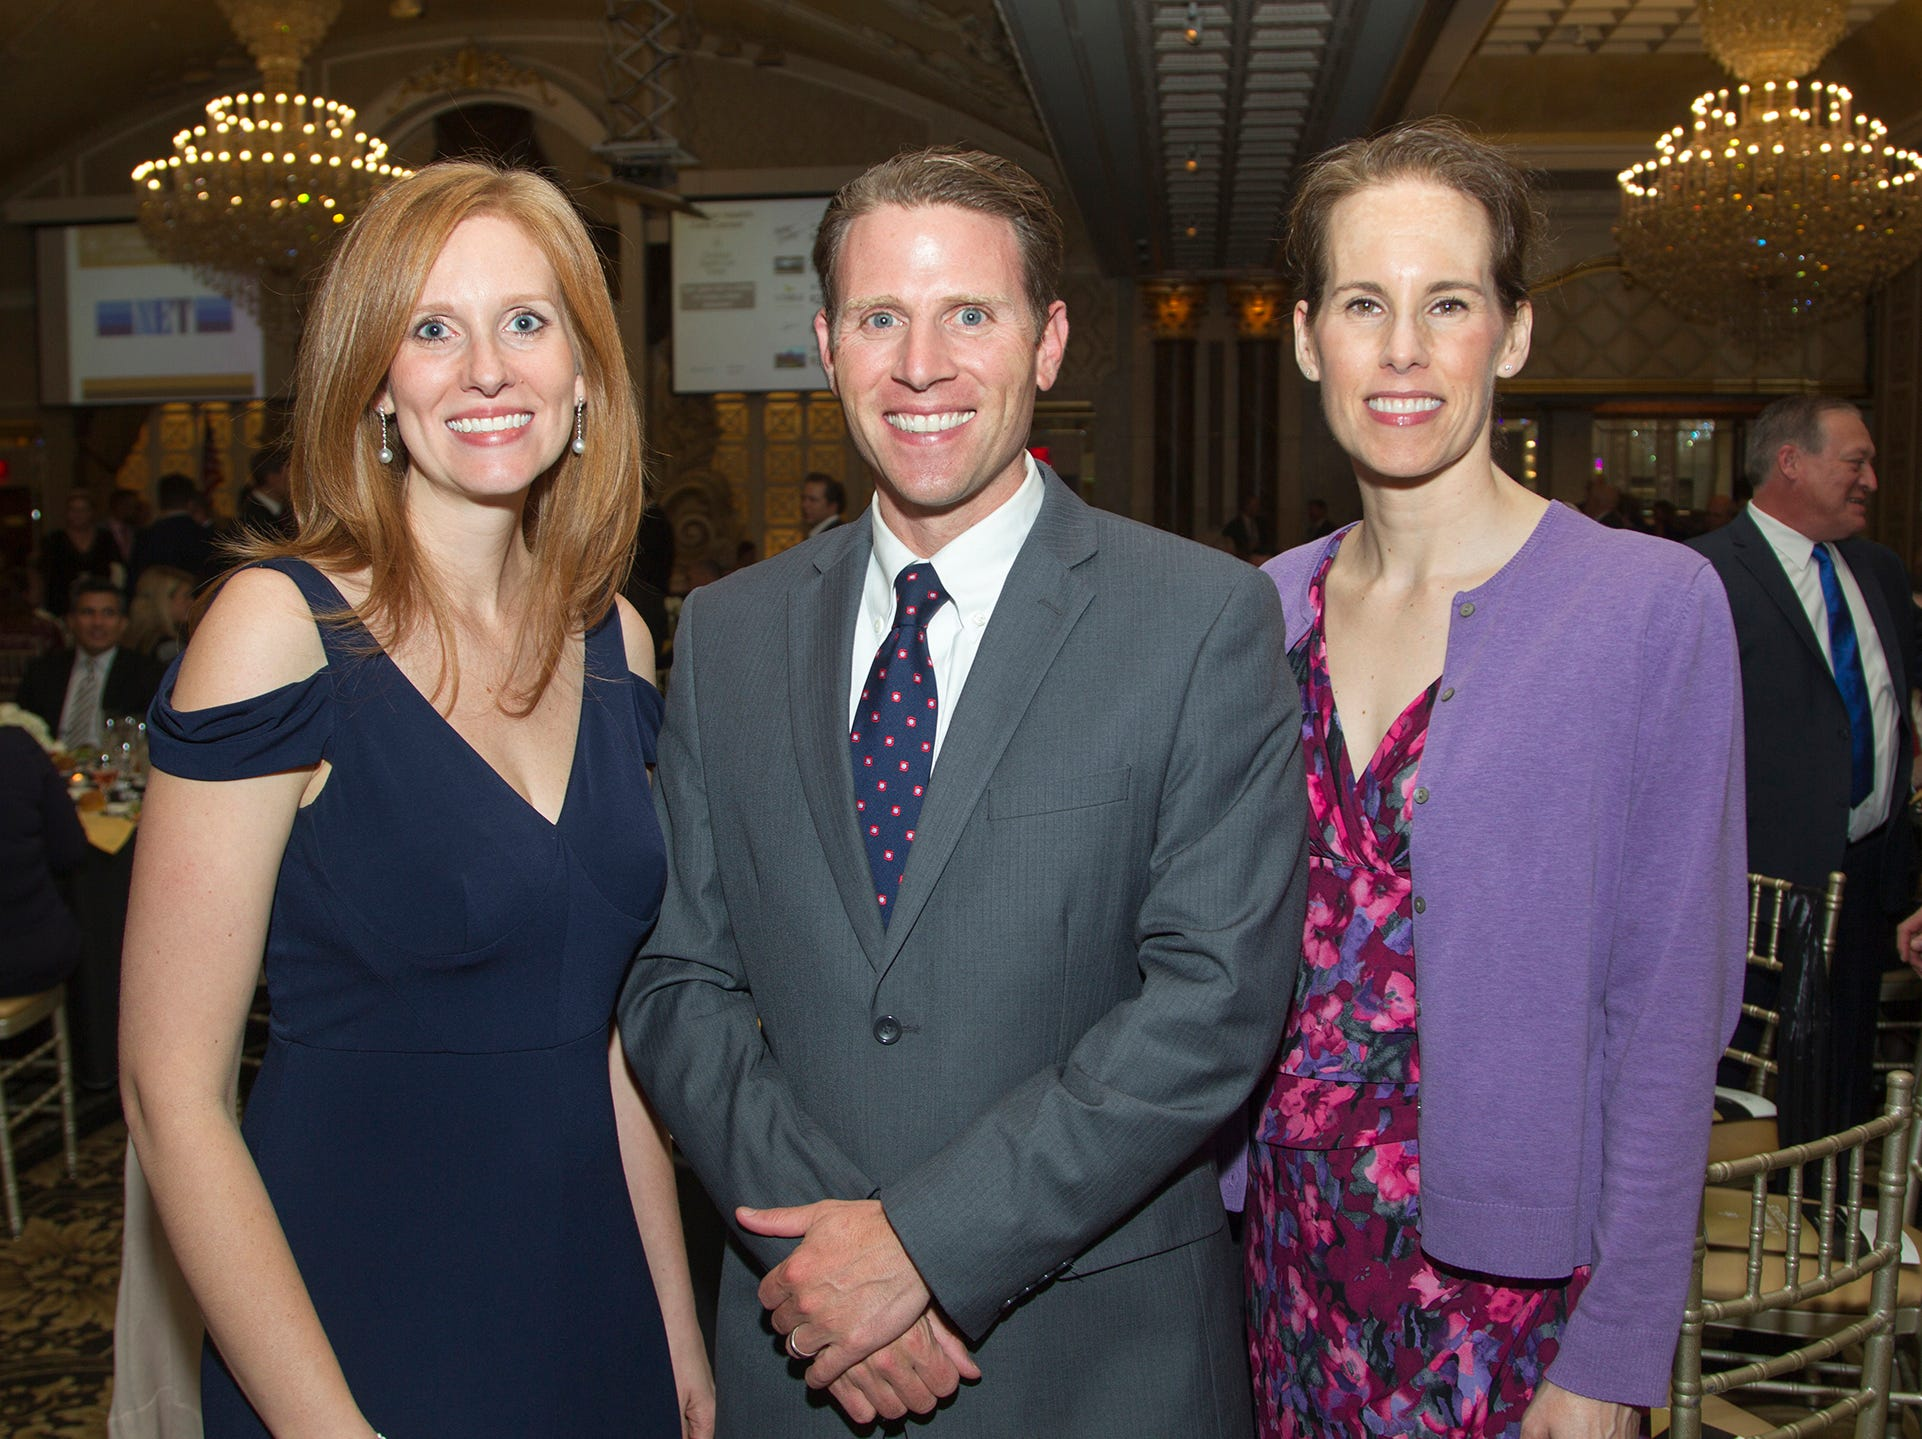 Stephanie Schadeo, John Tumminia, Gayle Whitelaw. Christian Health Care Center held its ' A Celebration of Excellence' gala at the Venetian in Garfield.  10/17/2018